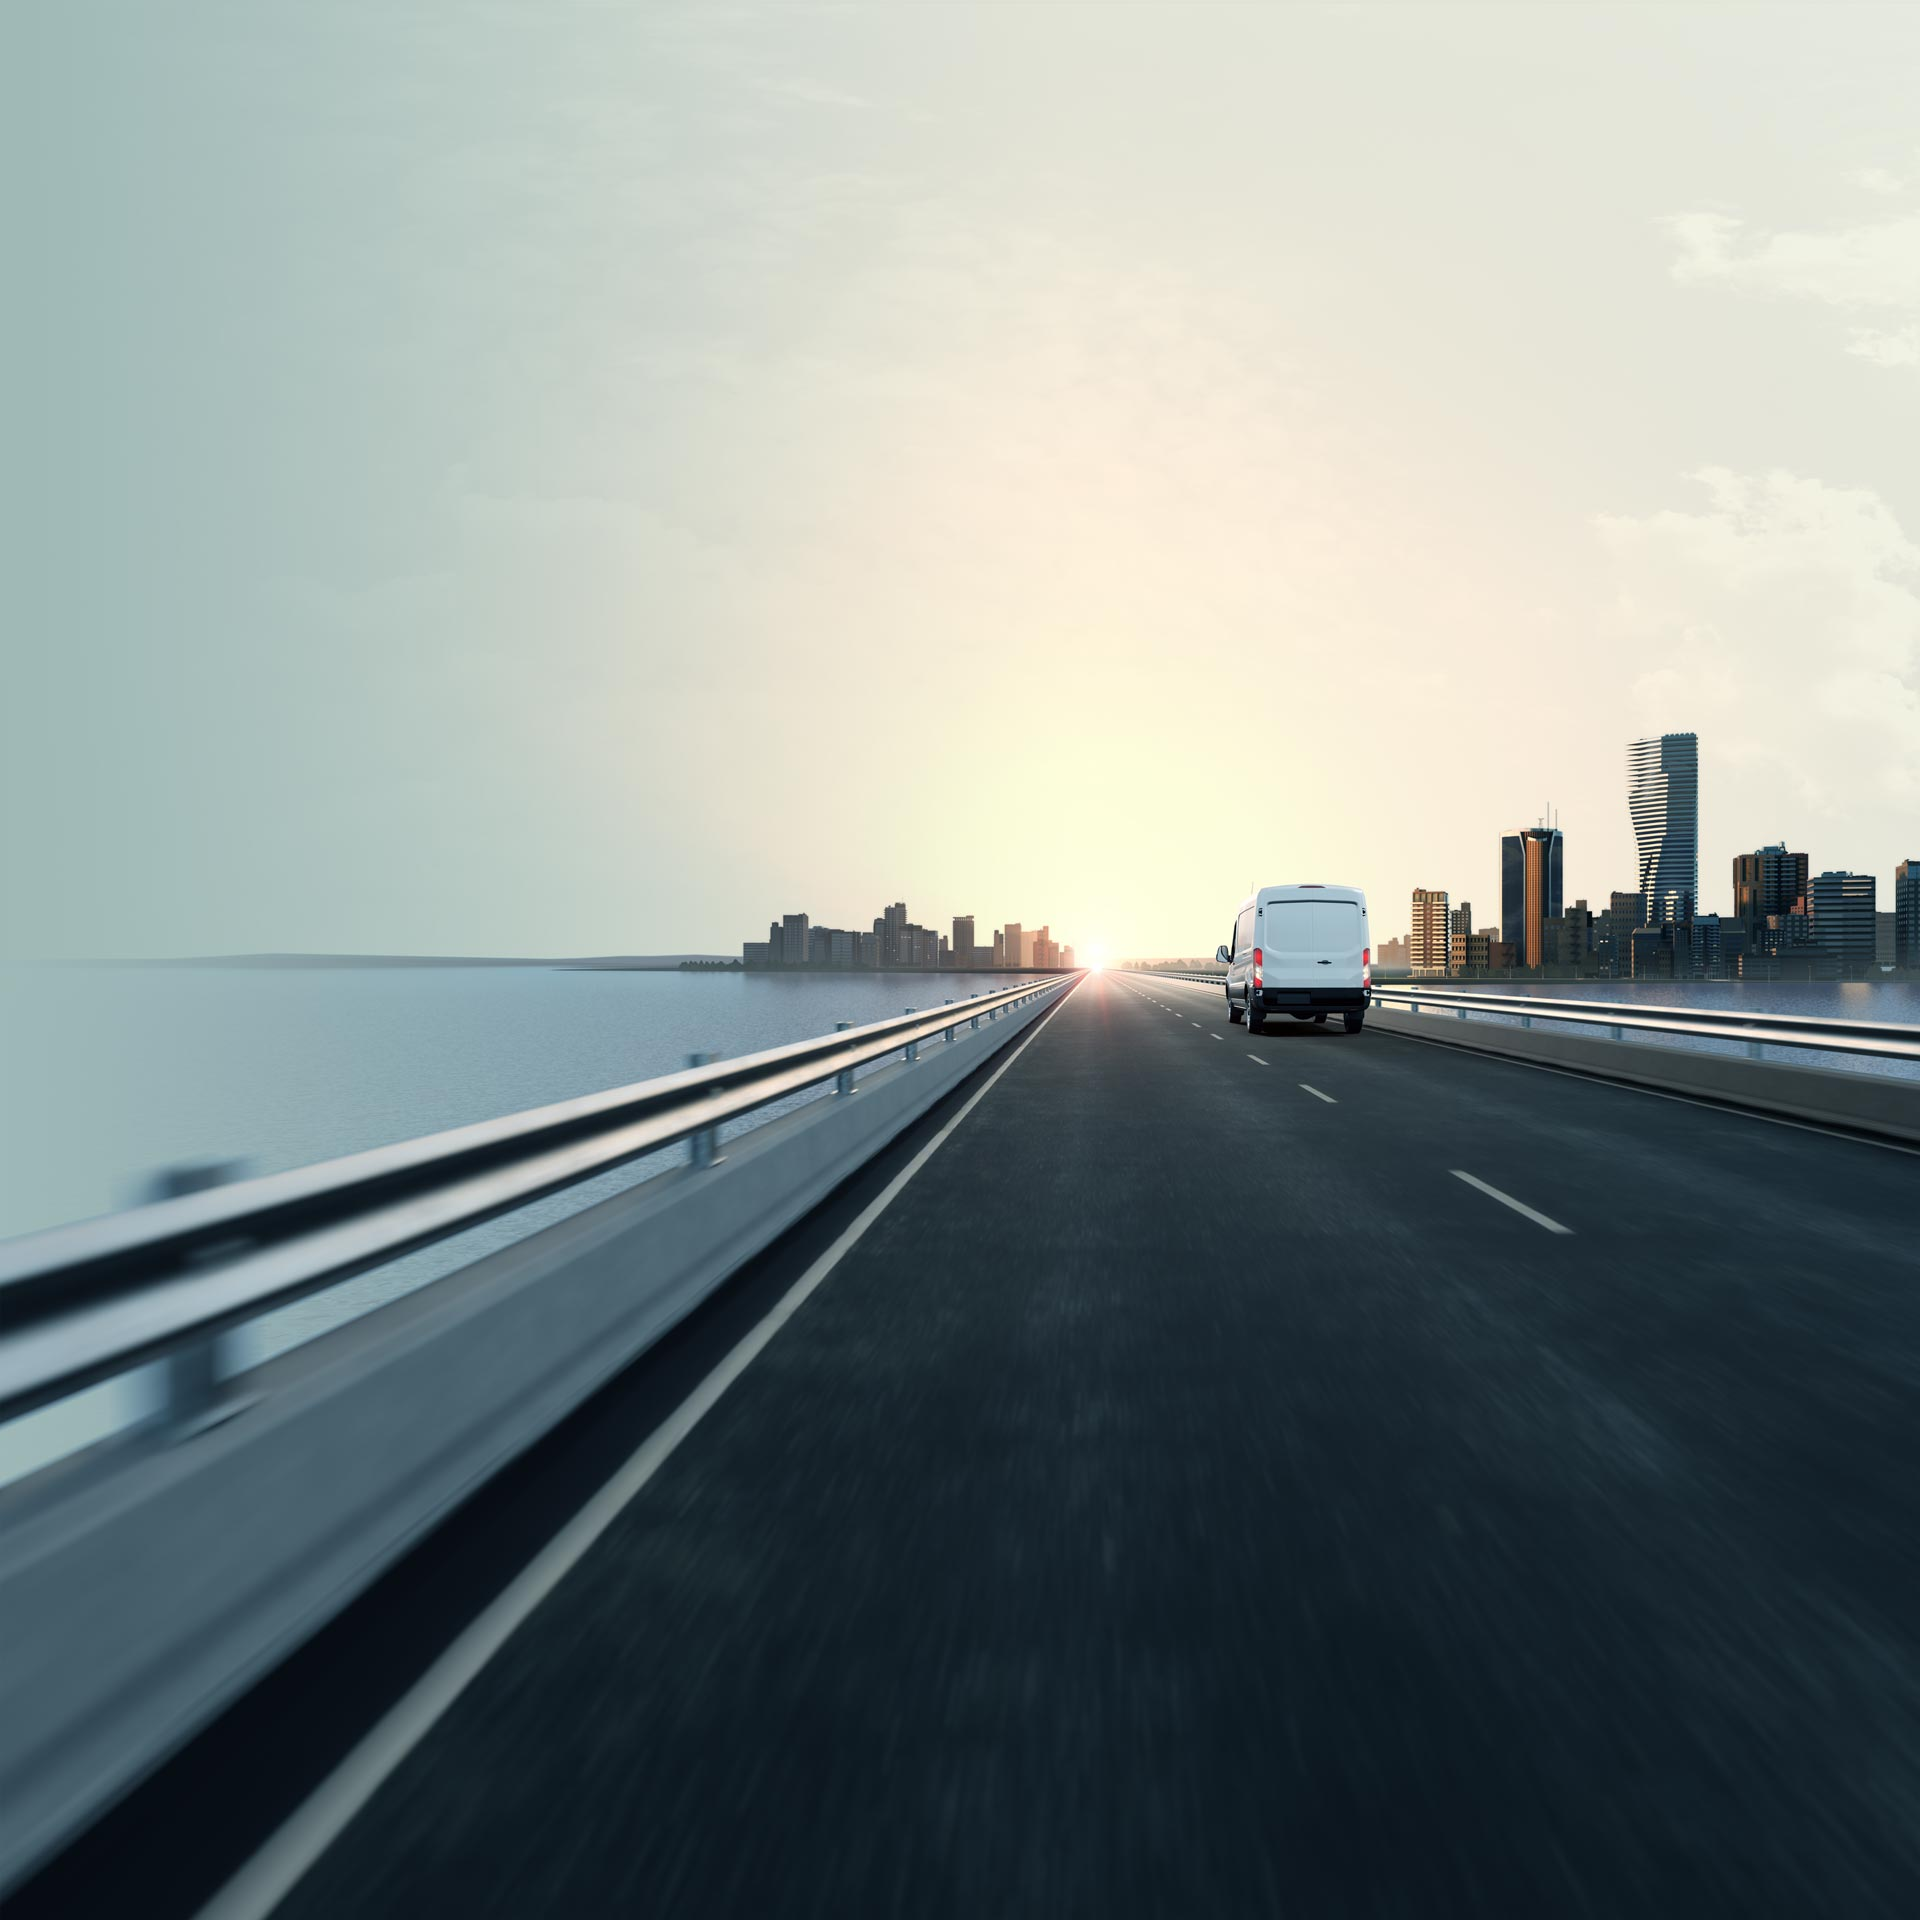 Semi-truck driving down highway toward city with sunrise